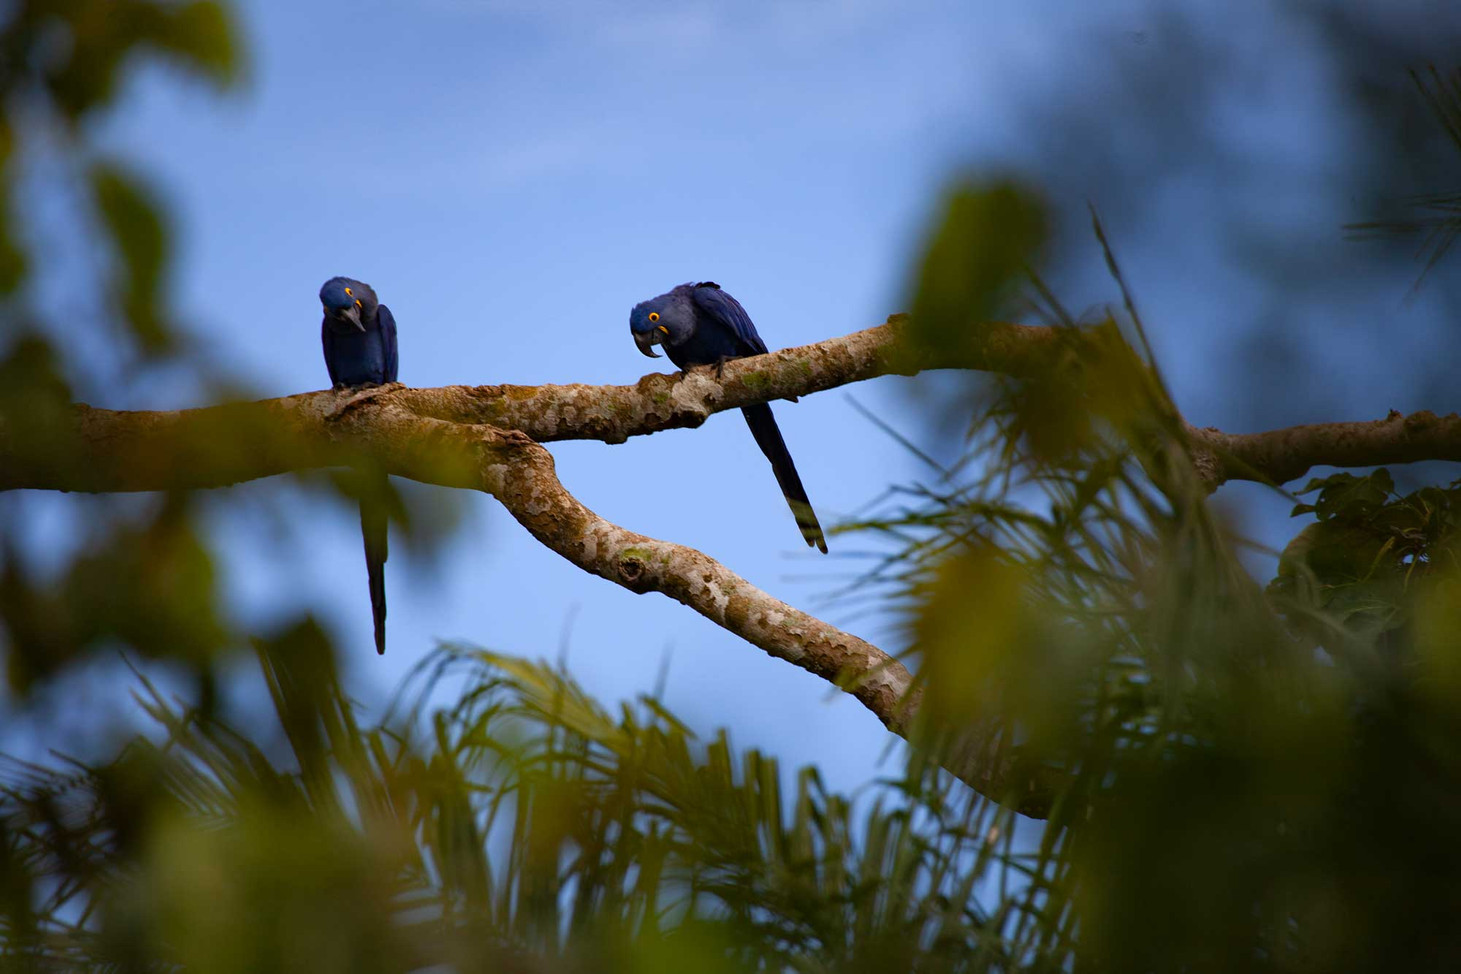 The Hyacinth Macaw is the largest flying parrot species. Here, two hyacinth macaws gaze down through the trees.